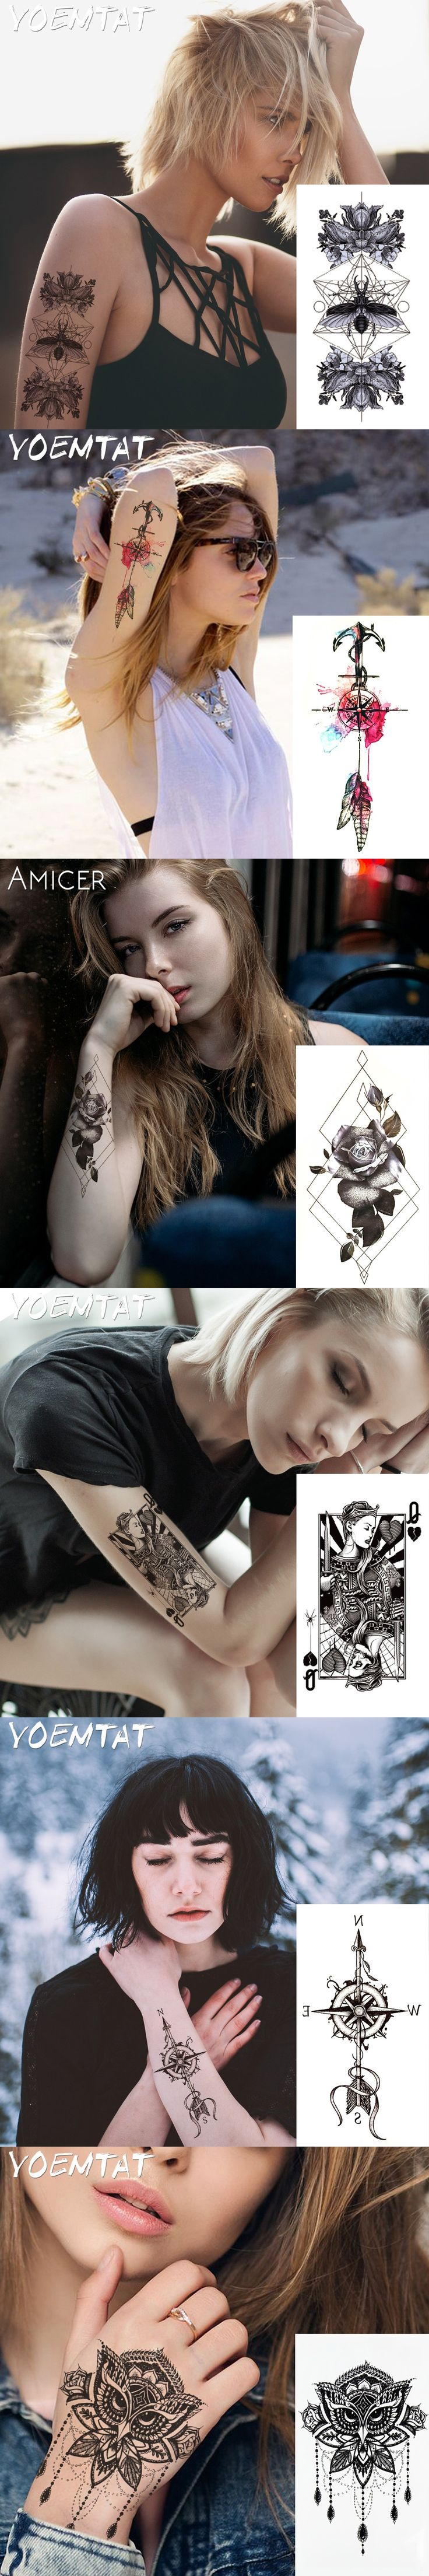 1PC Withered Roses Hot Black White Large Flower Henna Temporary Tattoo Black Mehndi Style Waterproof Tattoo Sticker